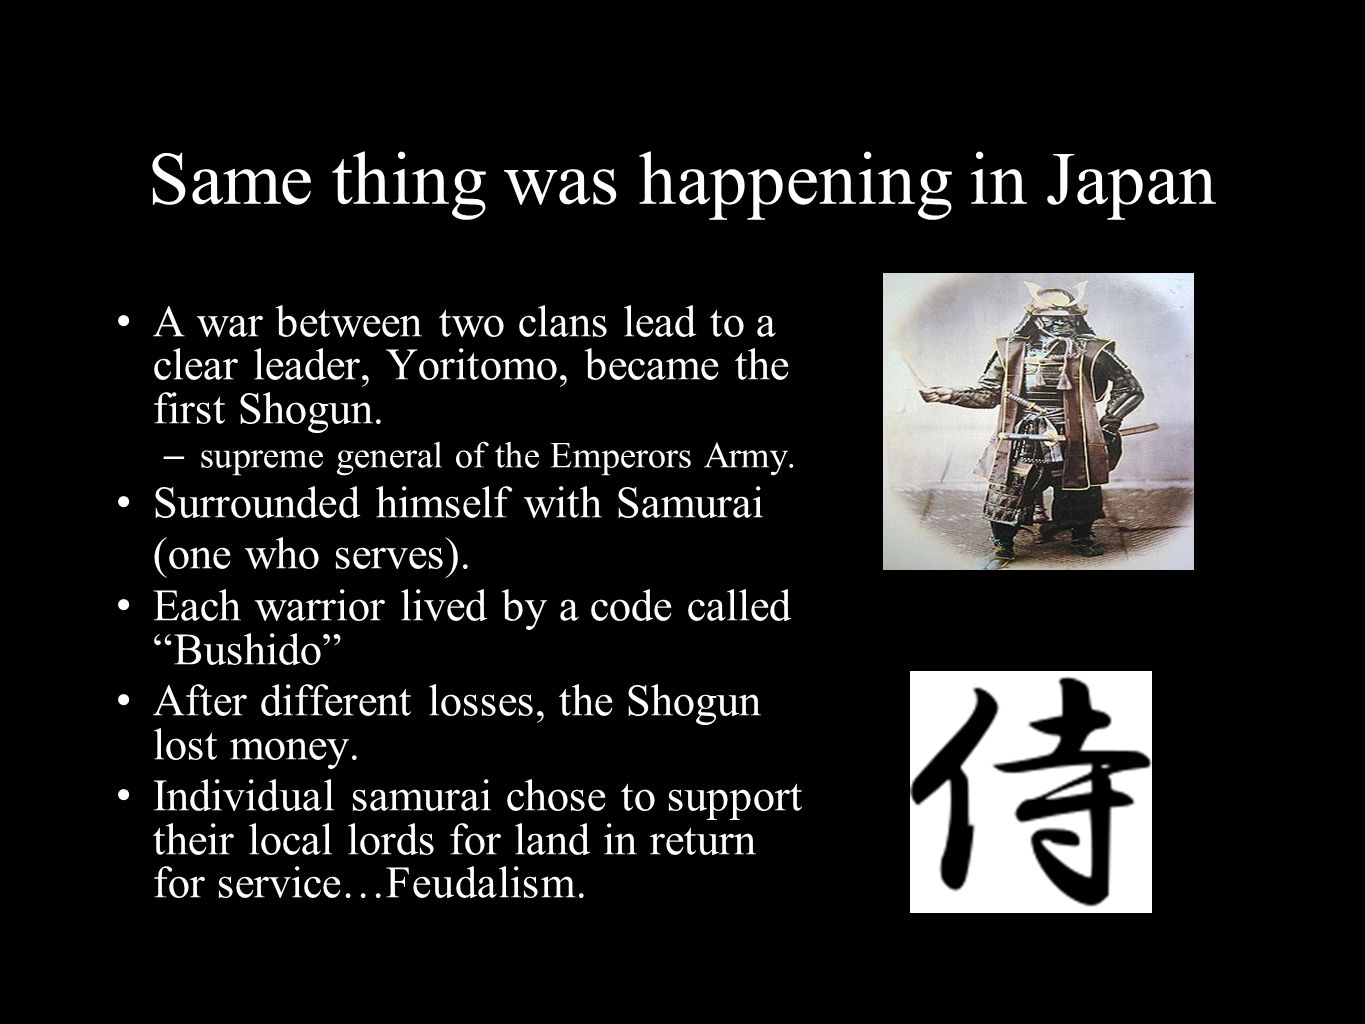 Same thing was happening in Japan